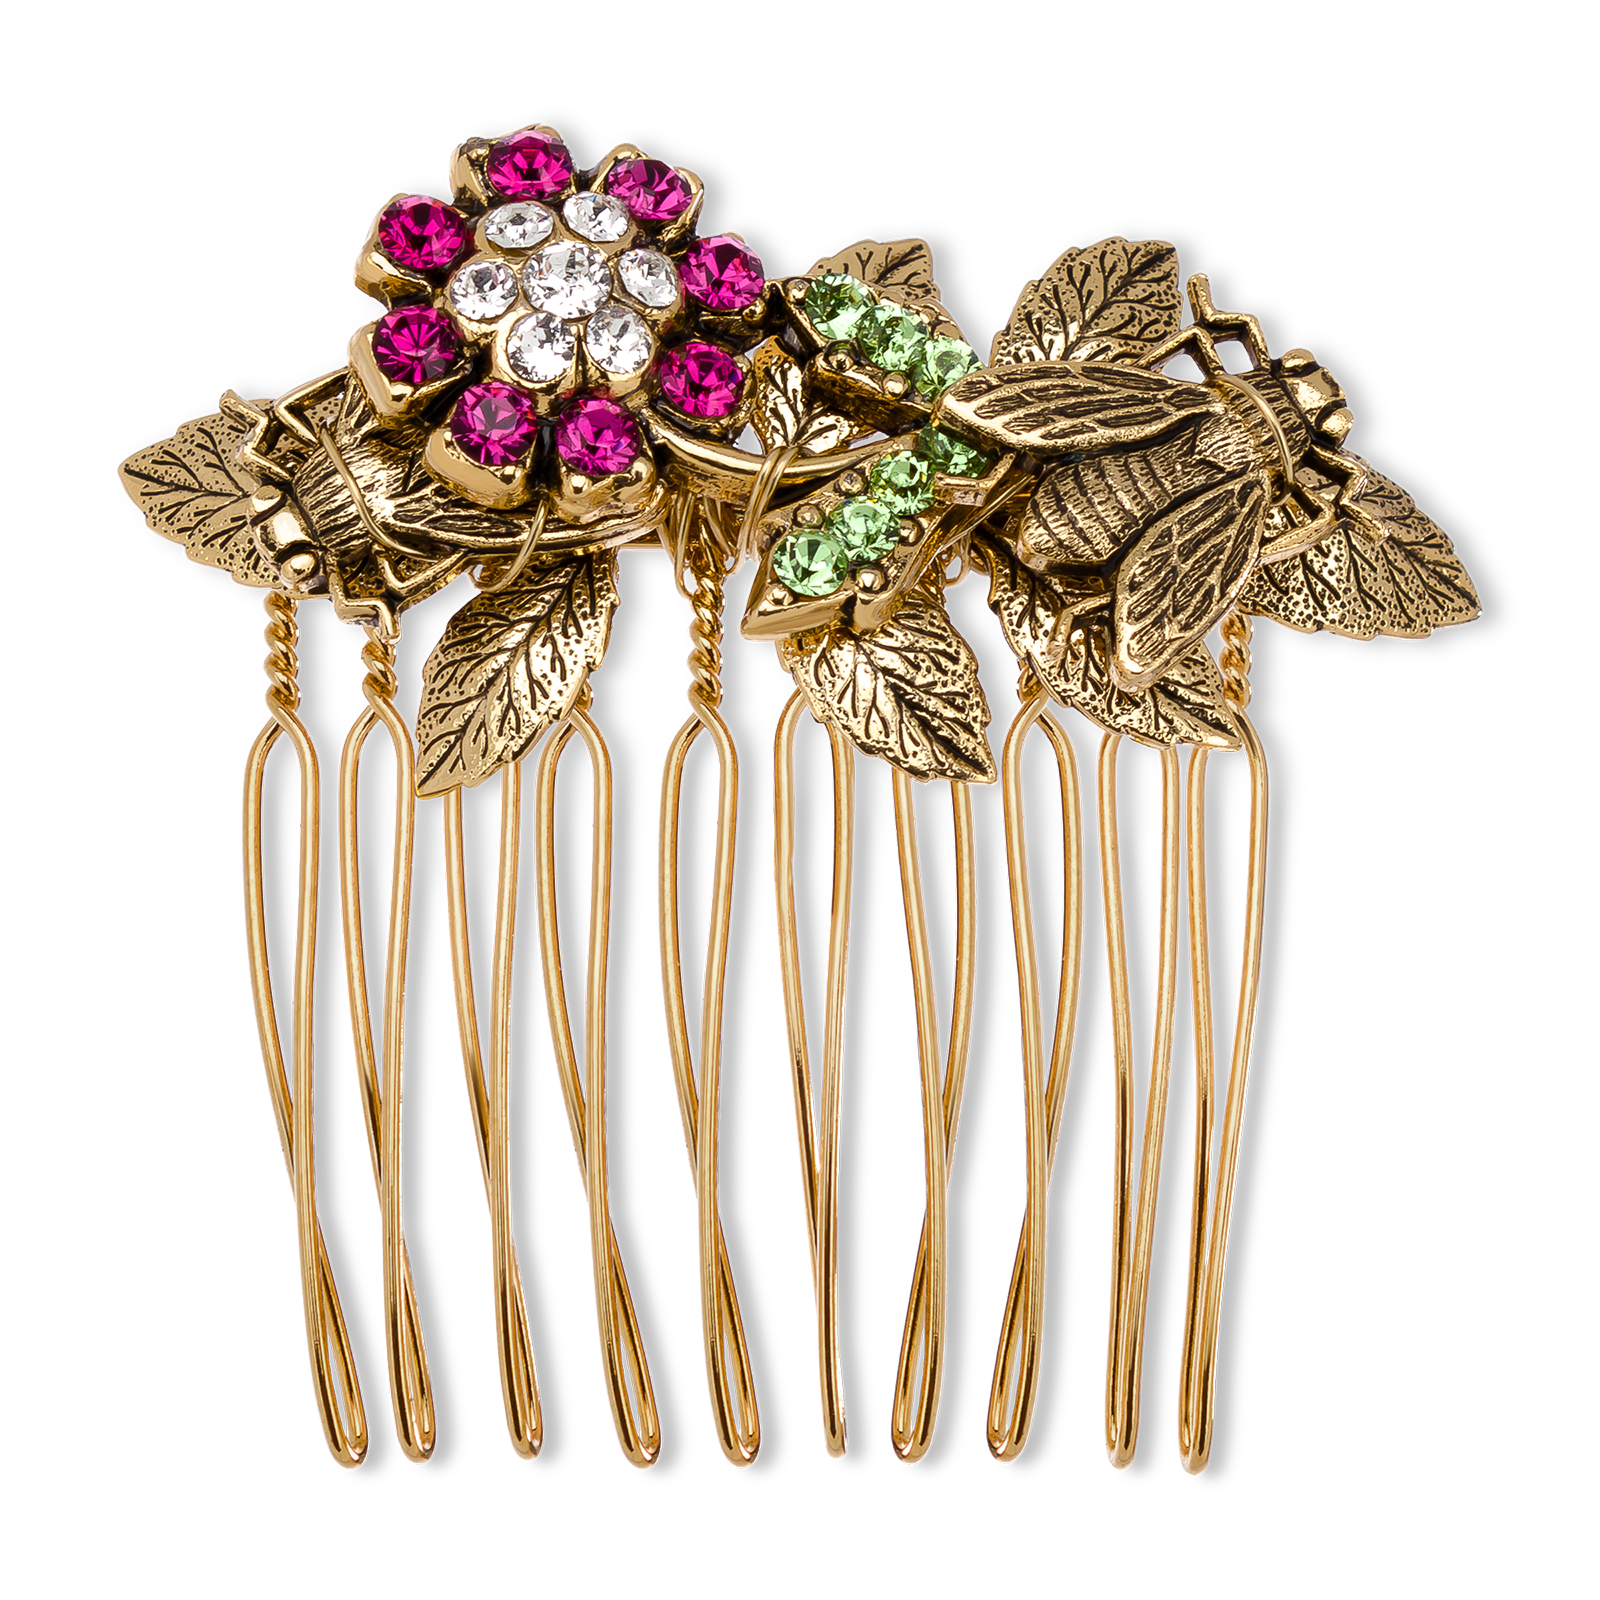 Decorative hair comb product picture